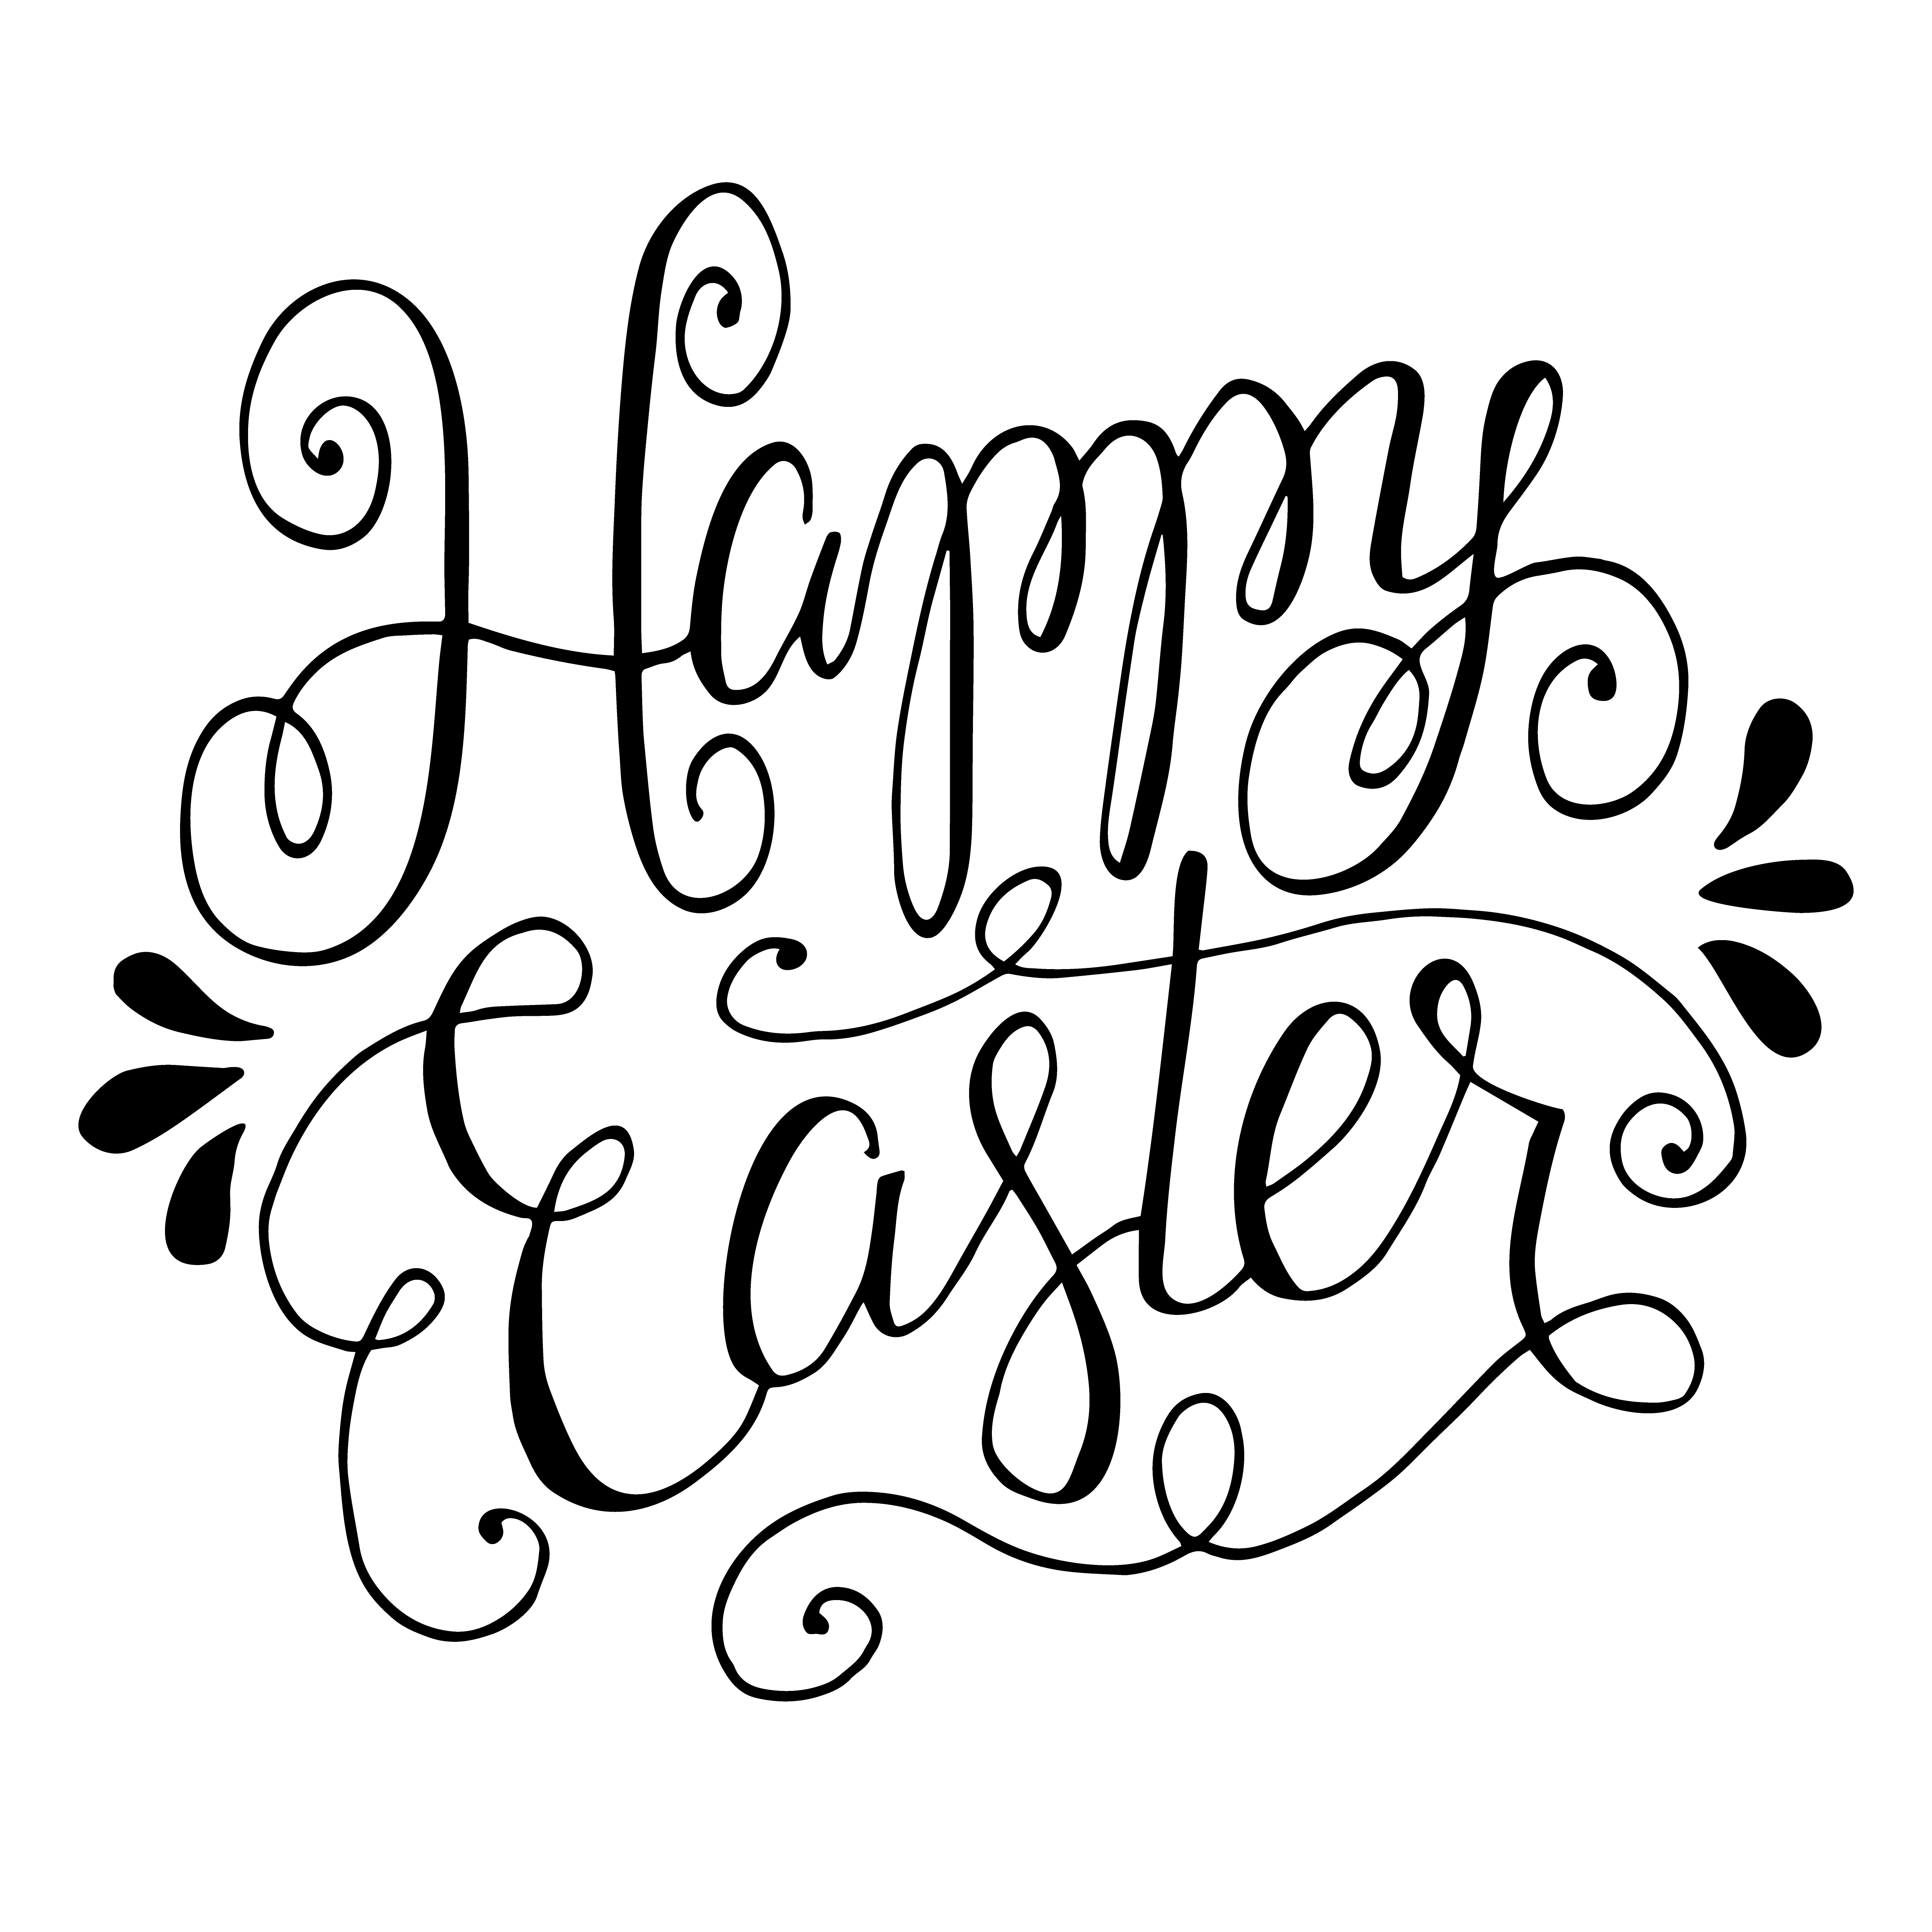 Easter Svg Download Easter Svg